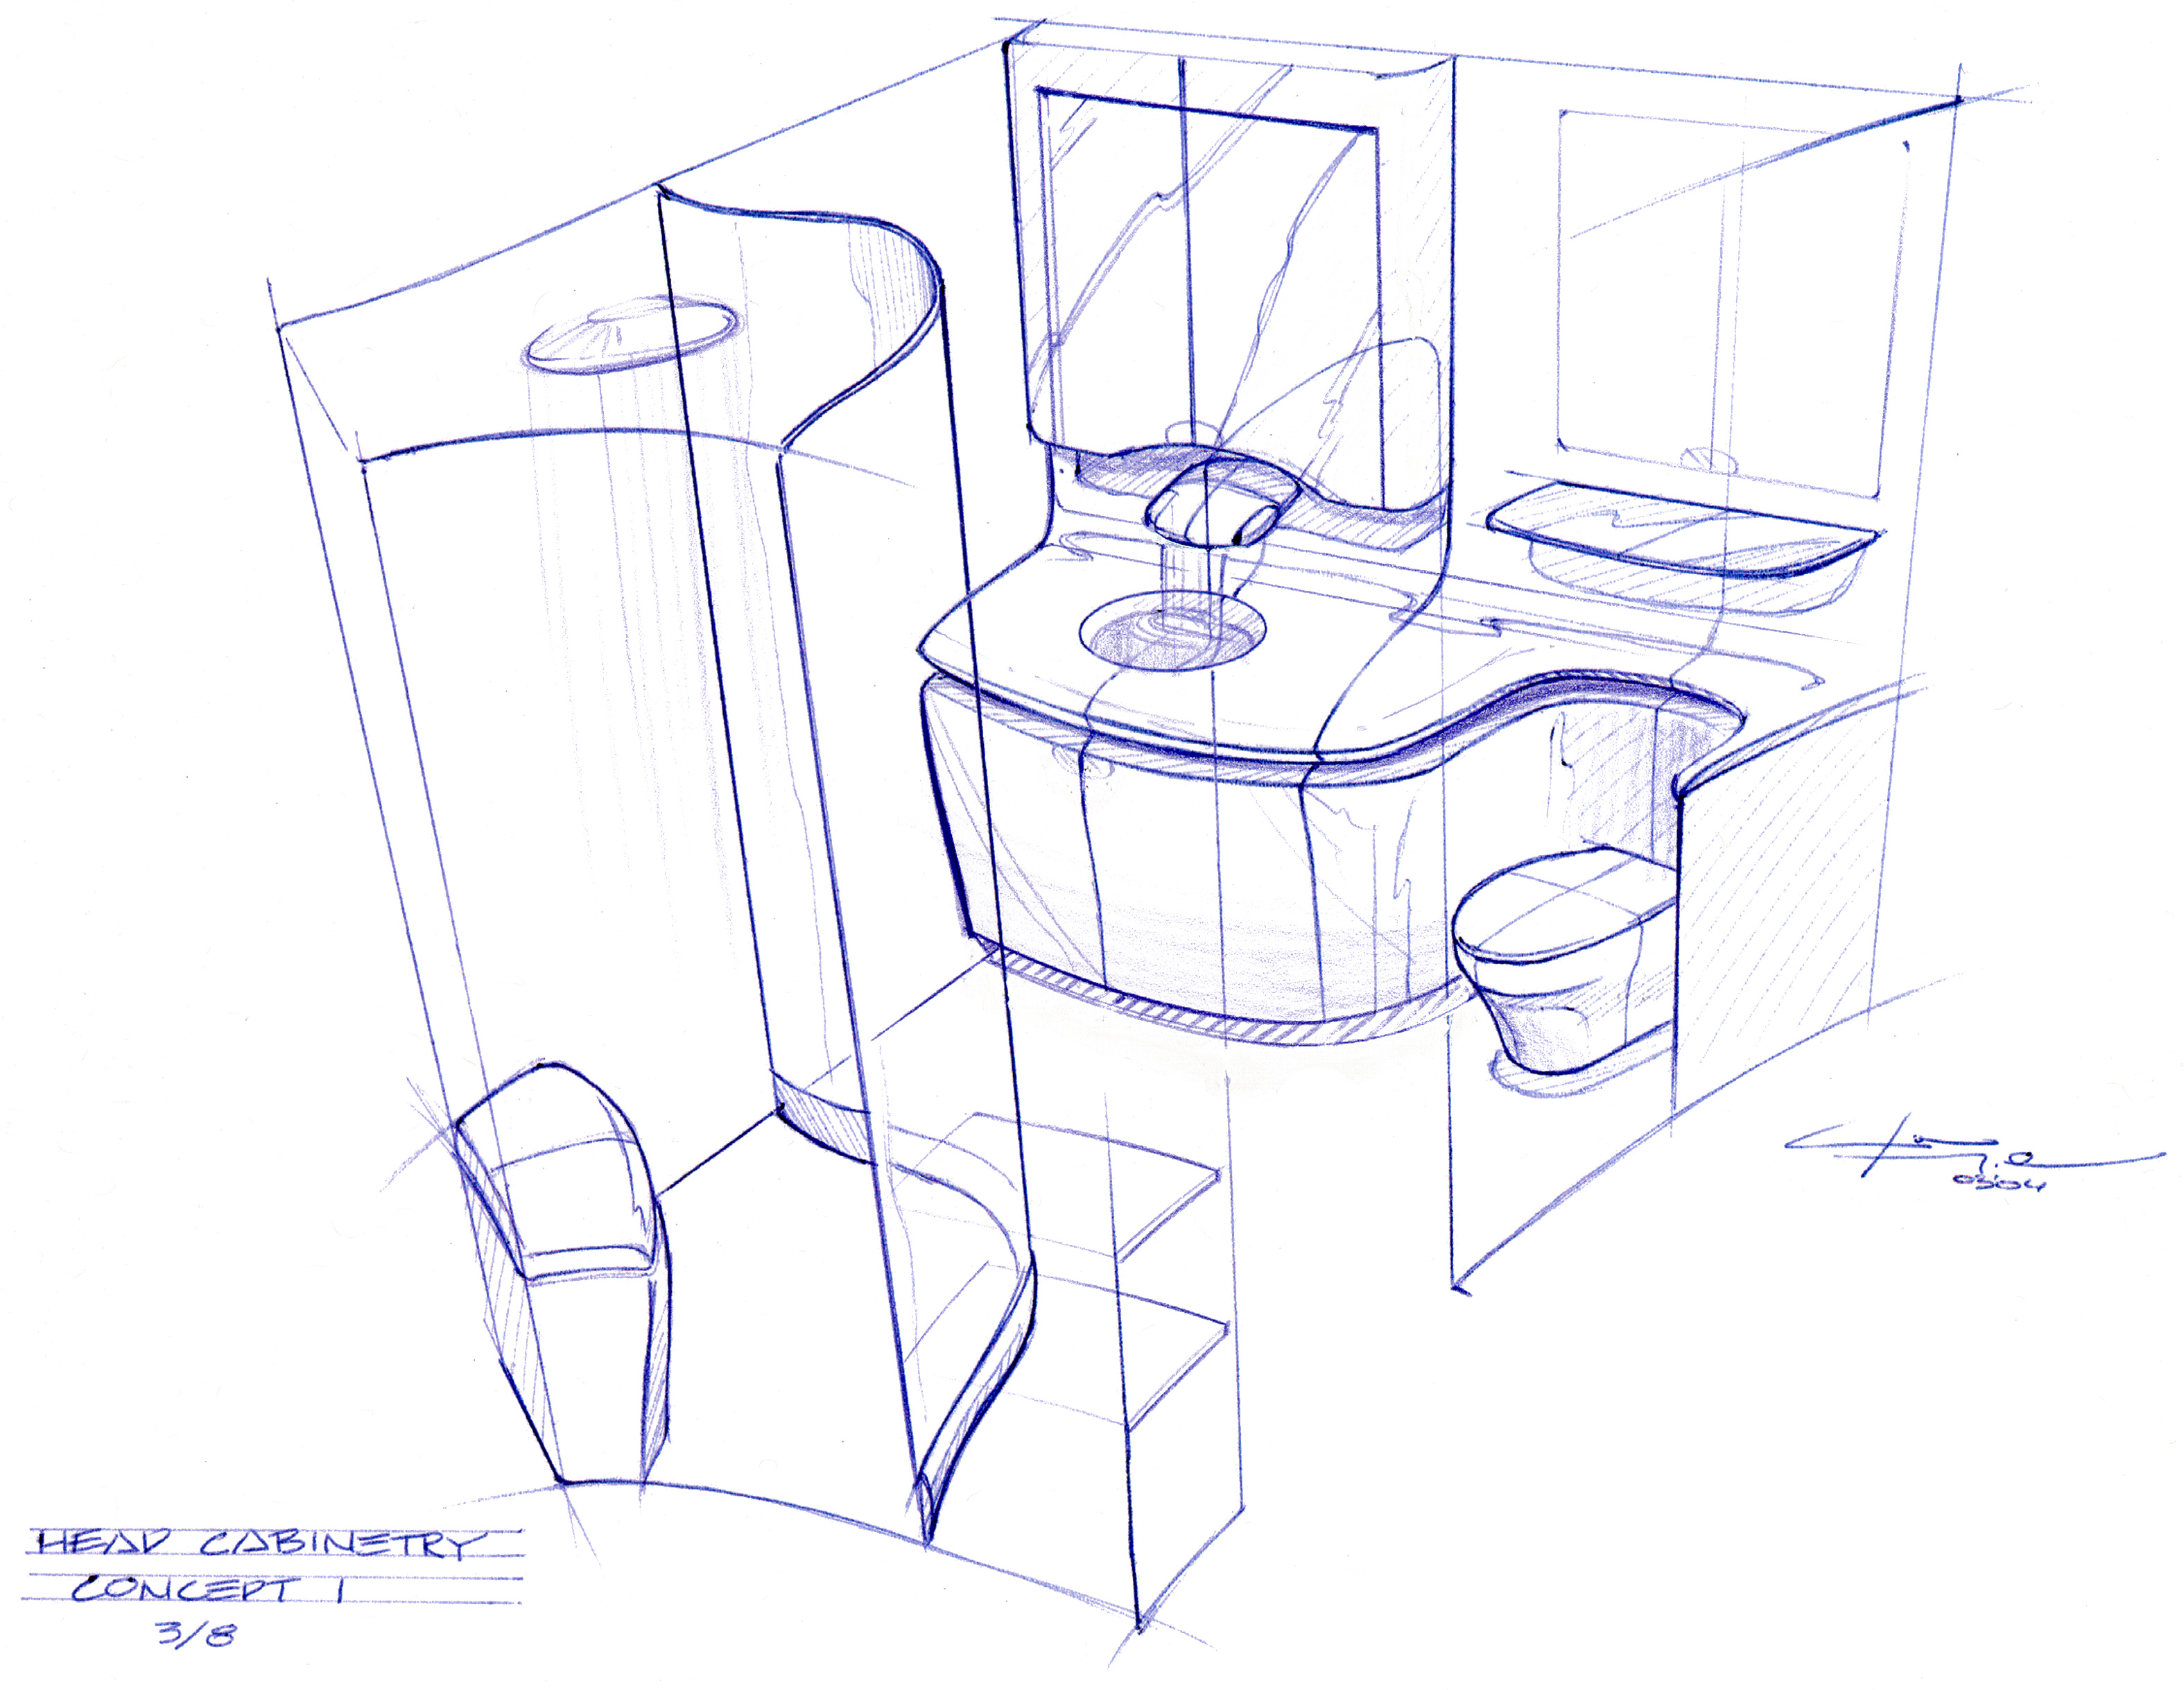 head cabinetry concept 1 - Architectural Design Interior